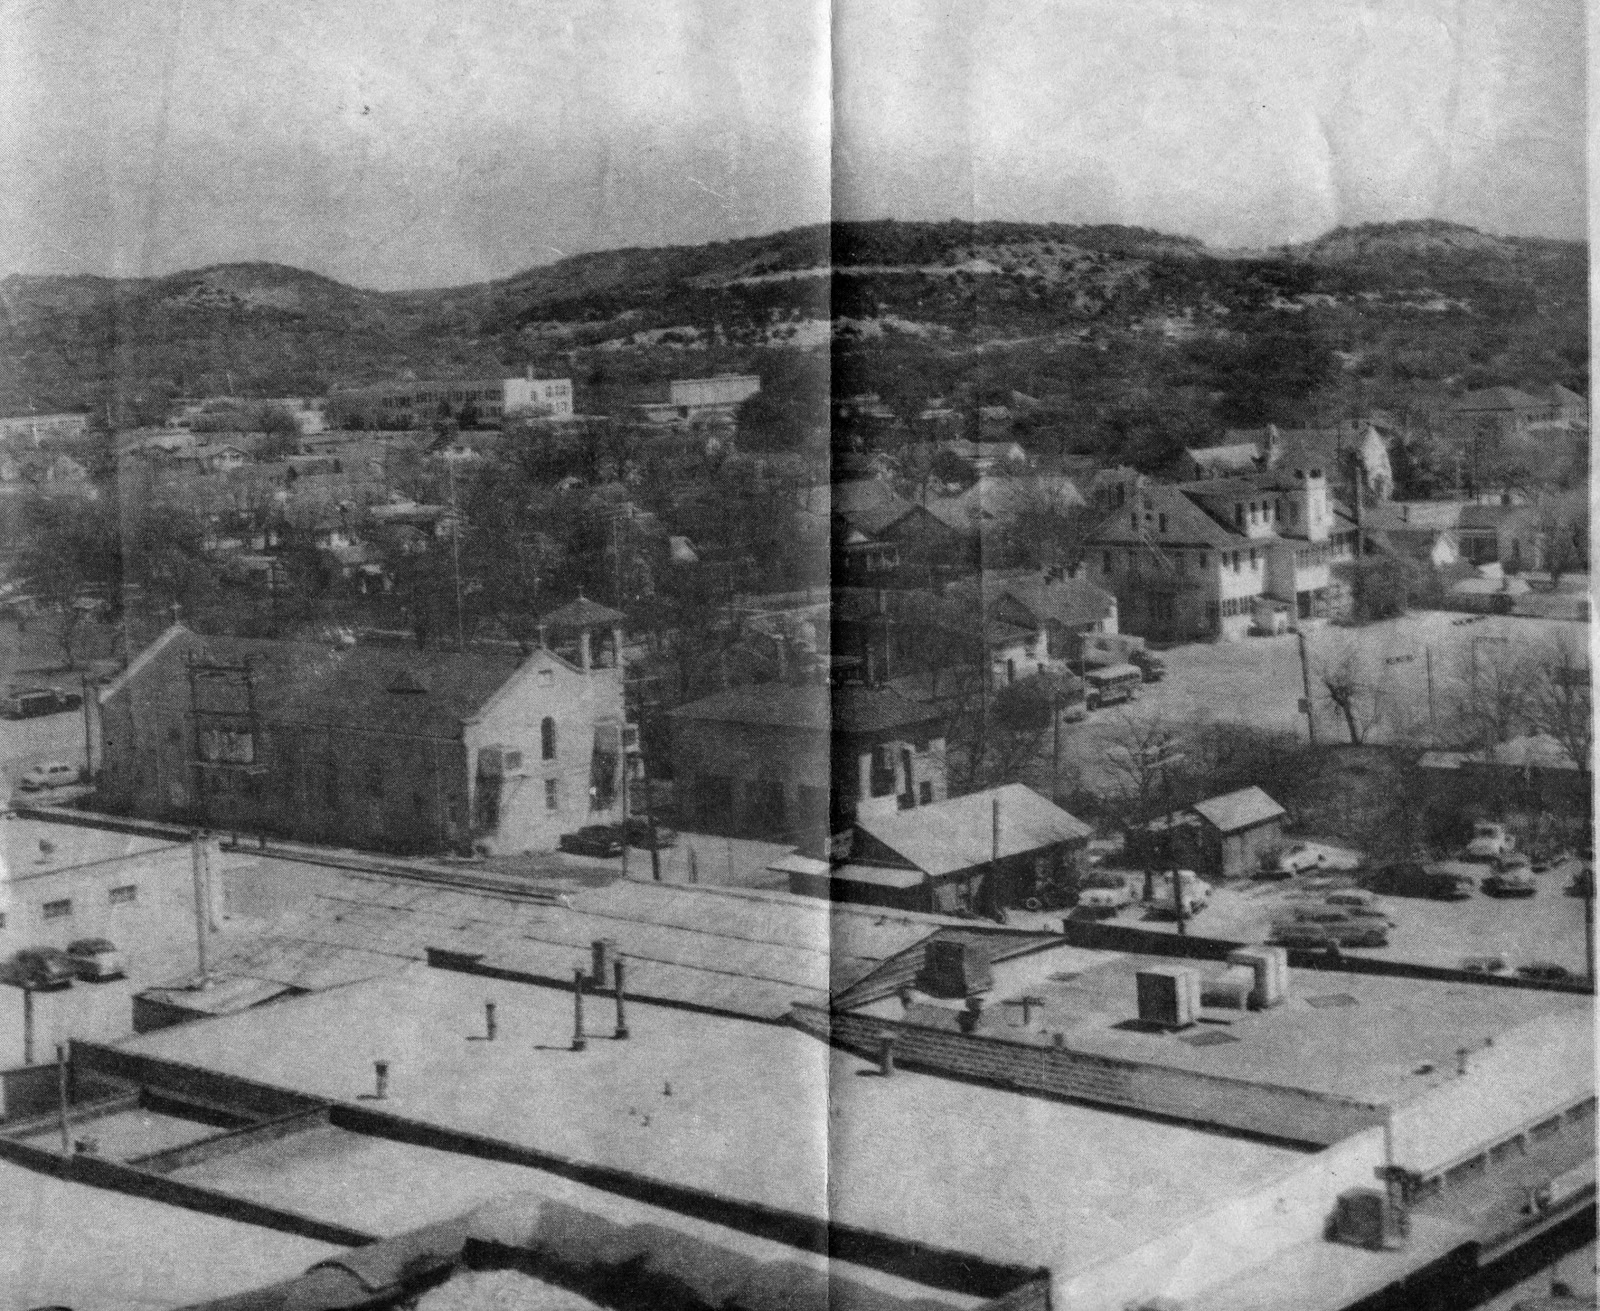 View Looking East Away From Downtown Across Washington Street This Is A Newspaper Clipping 1956 The Photo Was Taken Blue Bonnet Hotel